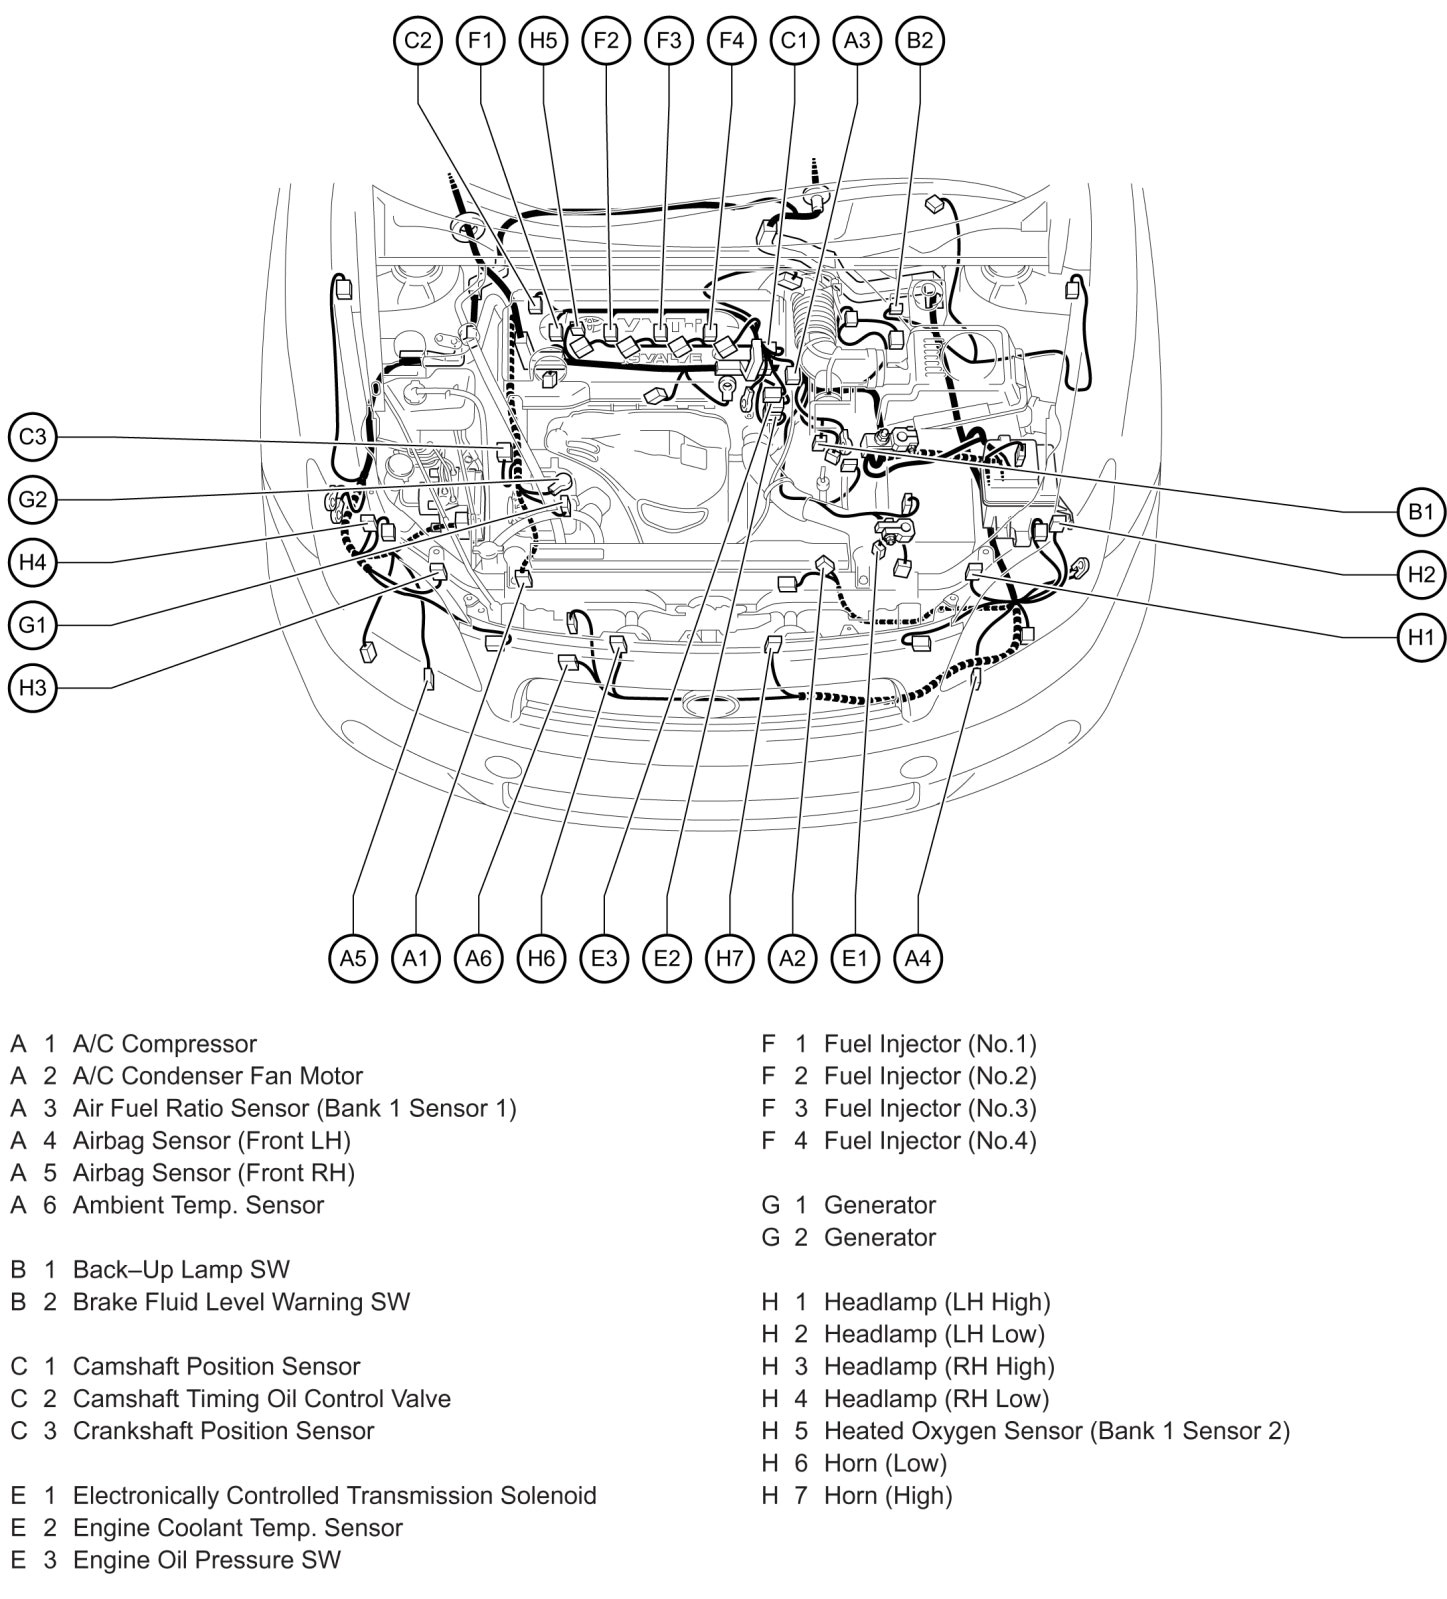 2009 Scion Xb Wiring Diagram. 2009 Lincoln Mkz Wiring